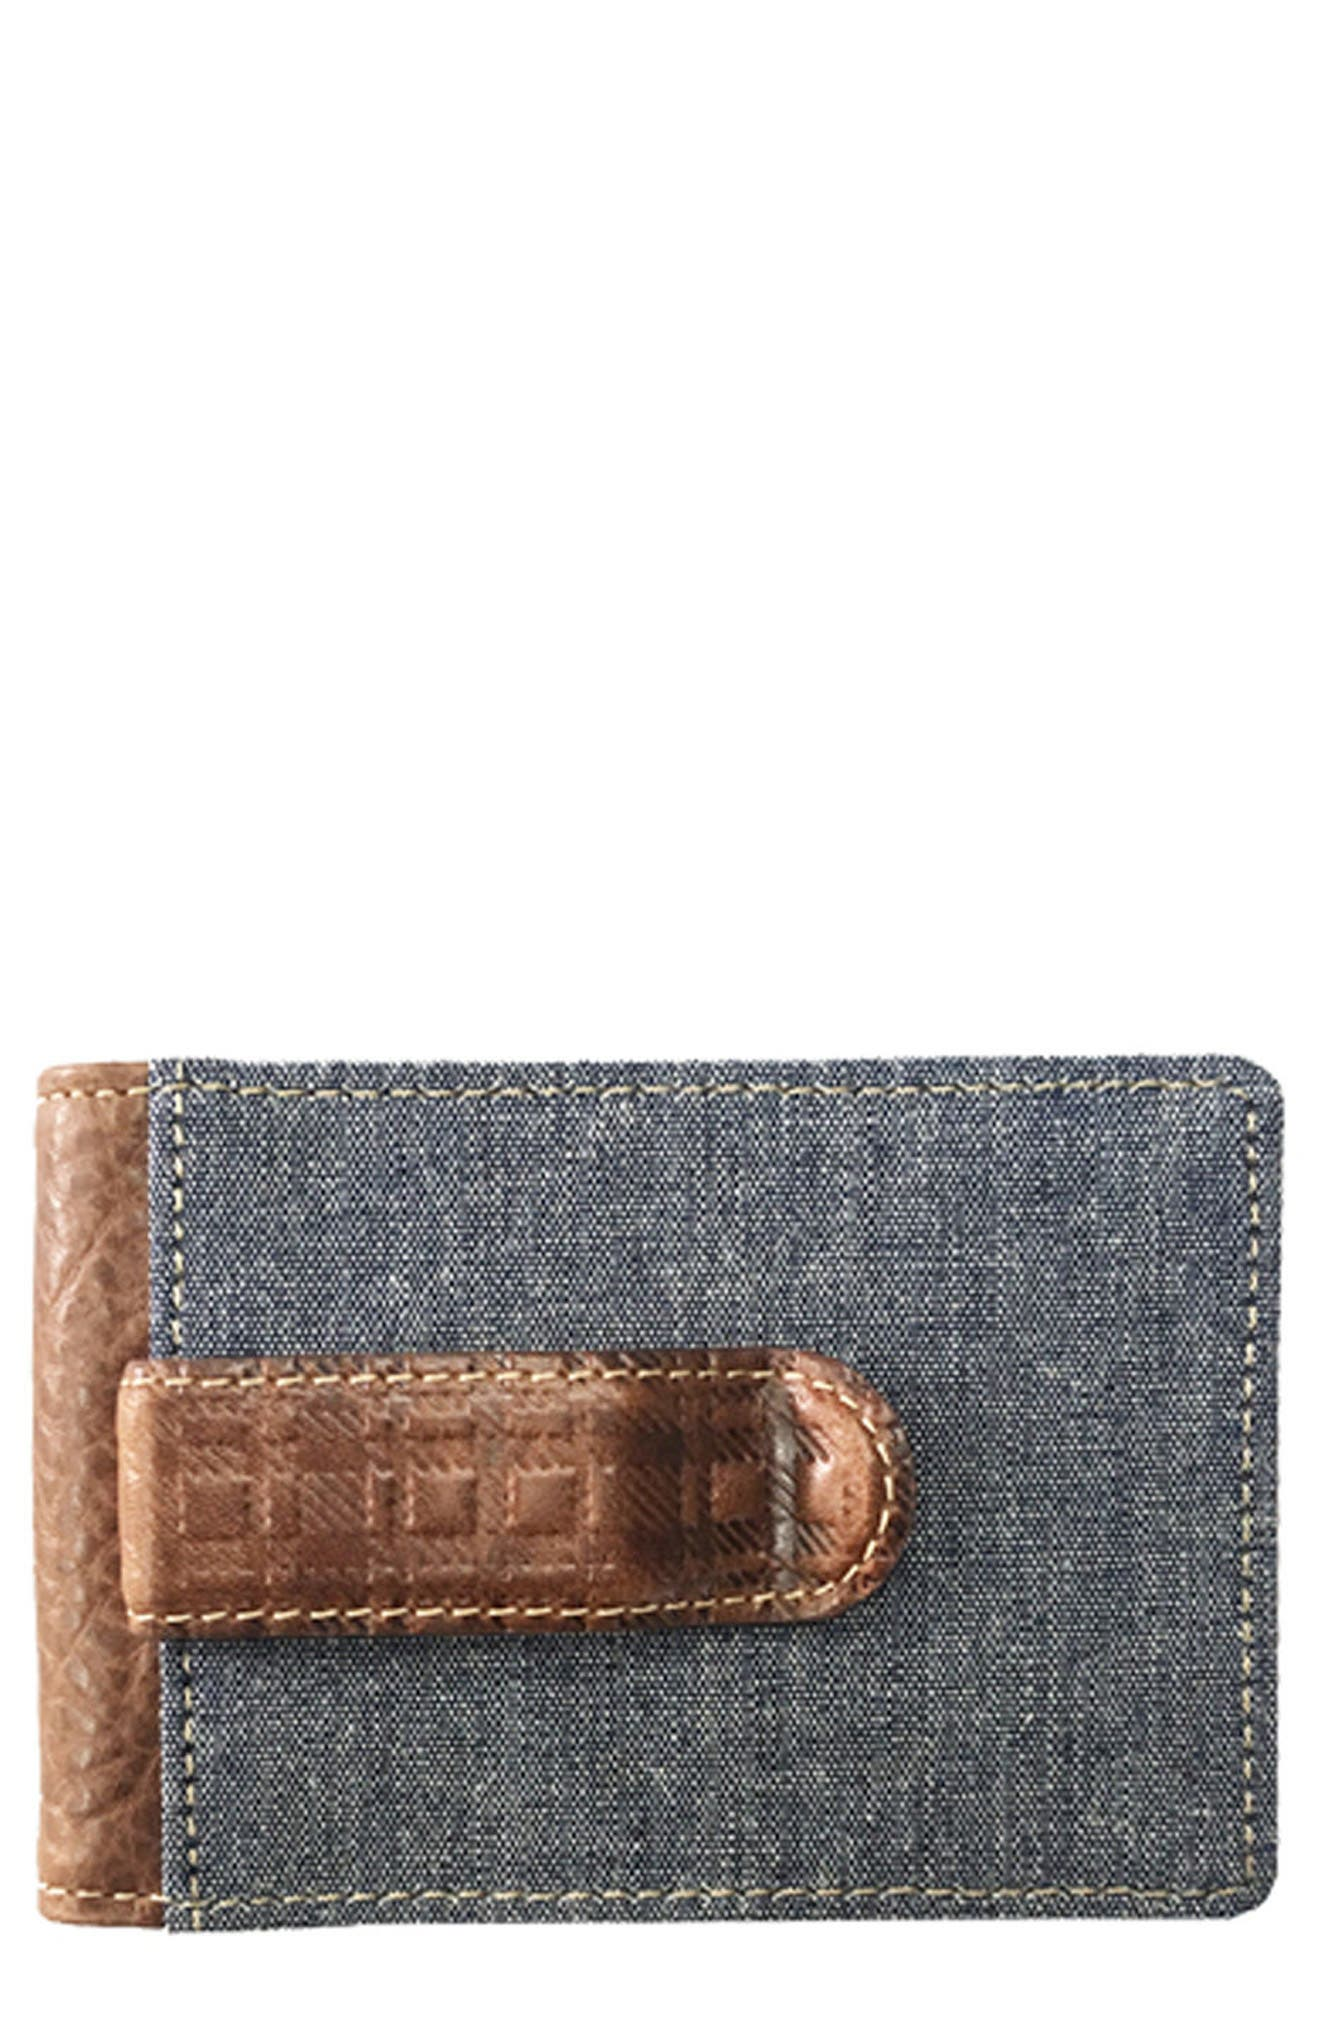 Caleb Bifold Wallet with Money Clip,                         Main,                         color, Chestnut/ Chambray